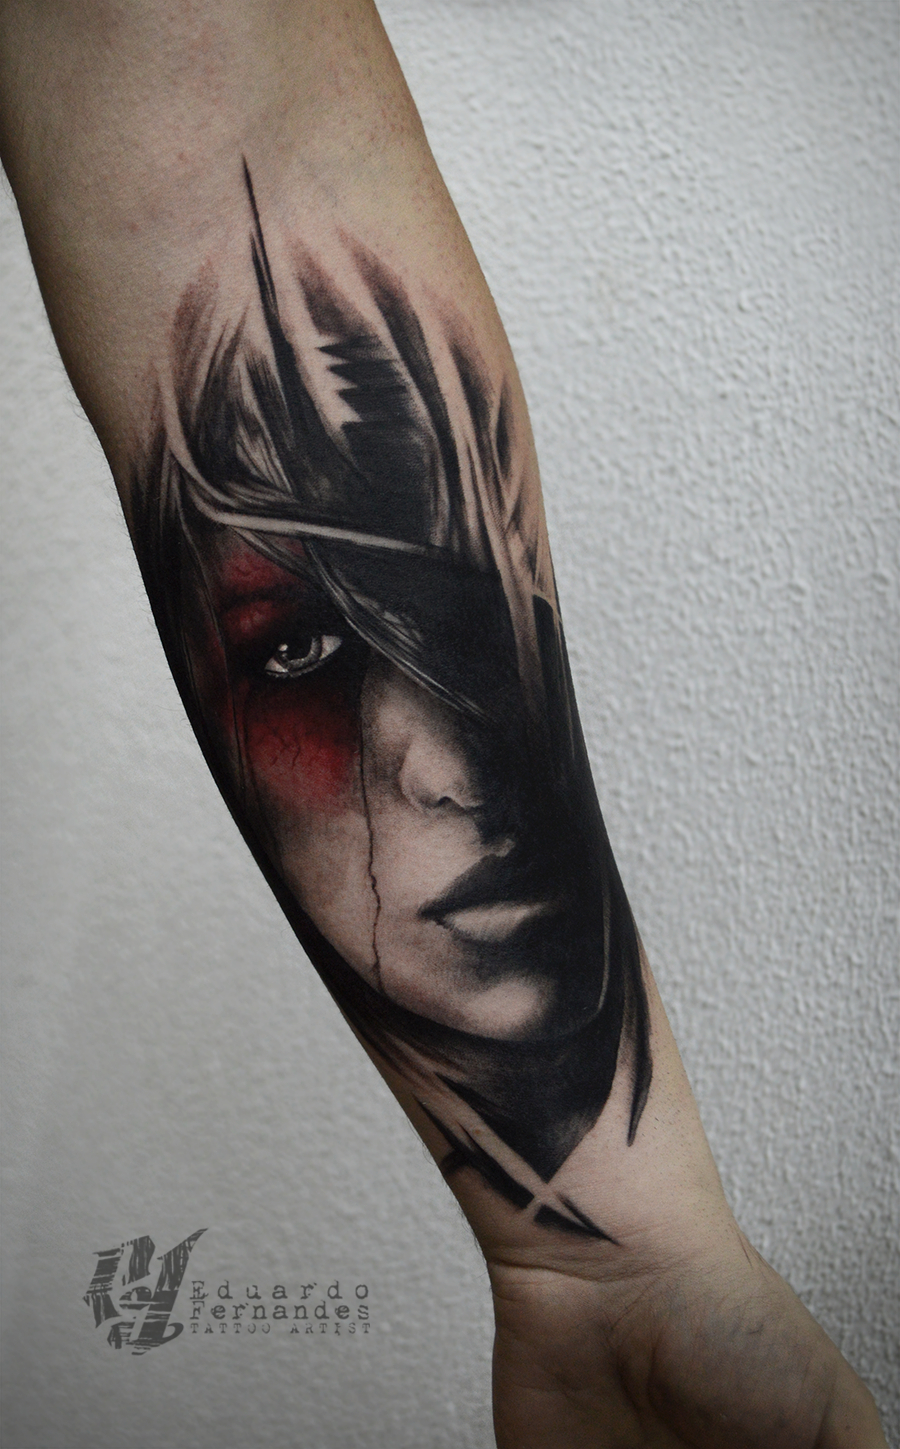 Download Free Girl Face Tattoo Tattoos Eduardo Fernandes To Use pertaining to size 900 X 1449